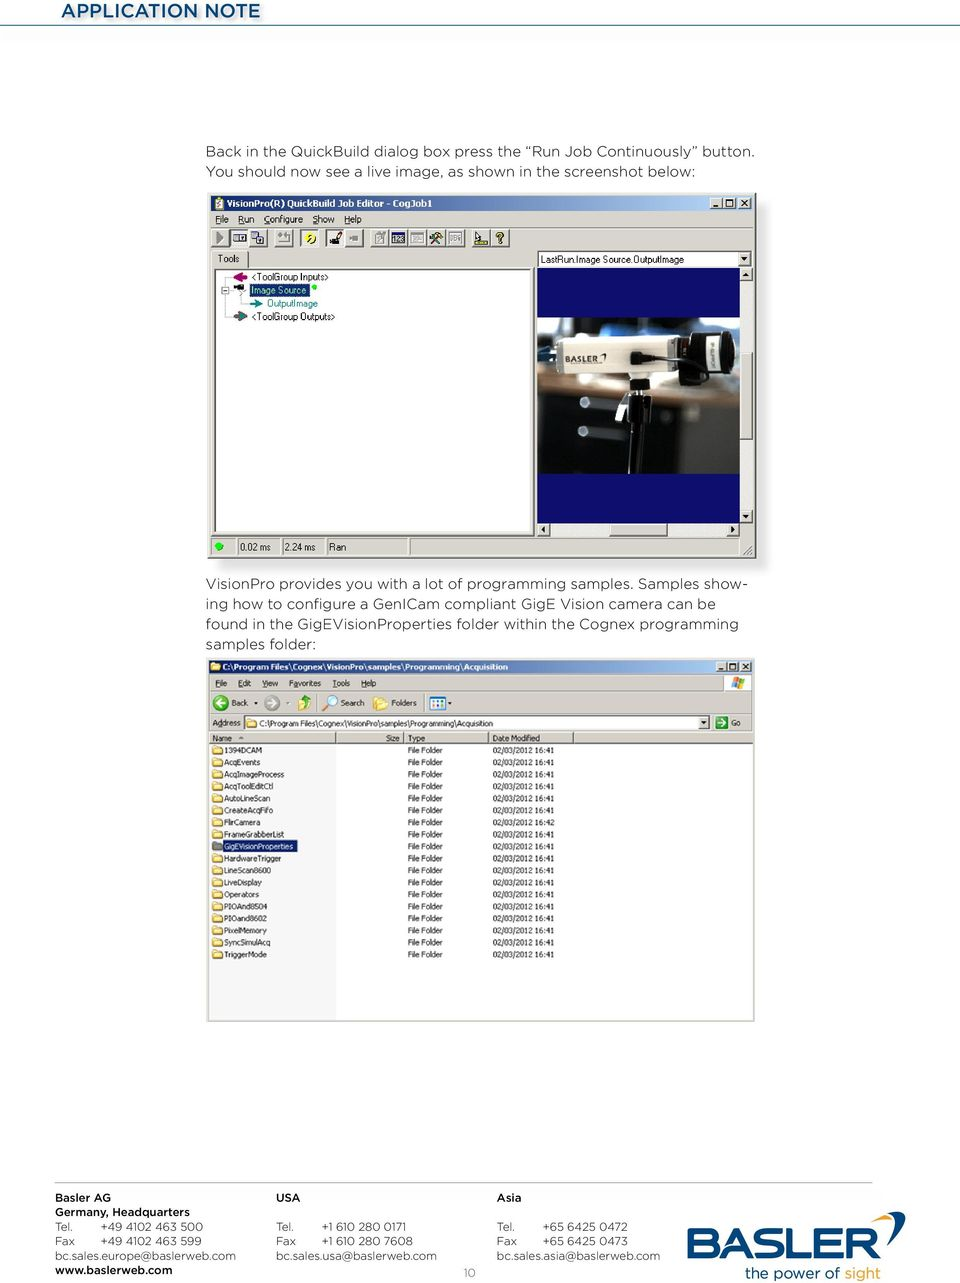 Samples showing how to configure a GenICam compliant GigE Vision camera can be found in the GigEVisionProperties folder within the Cognex programming samples